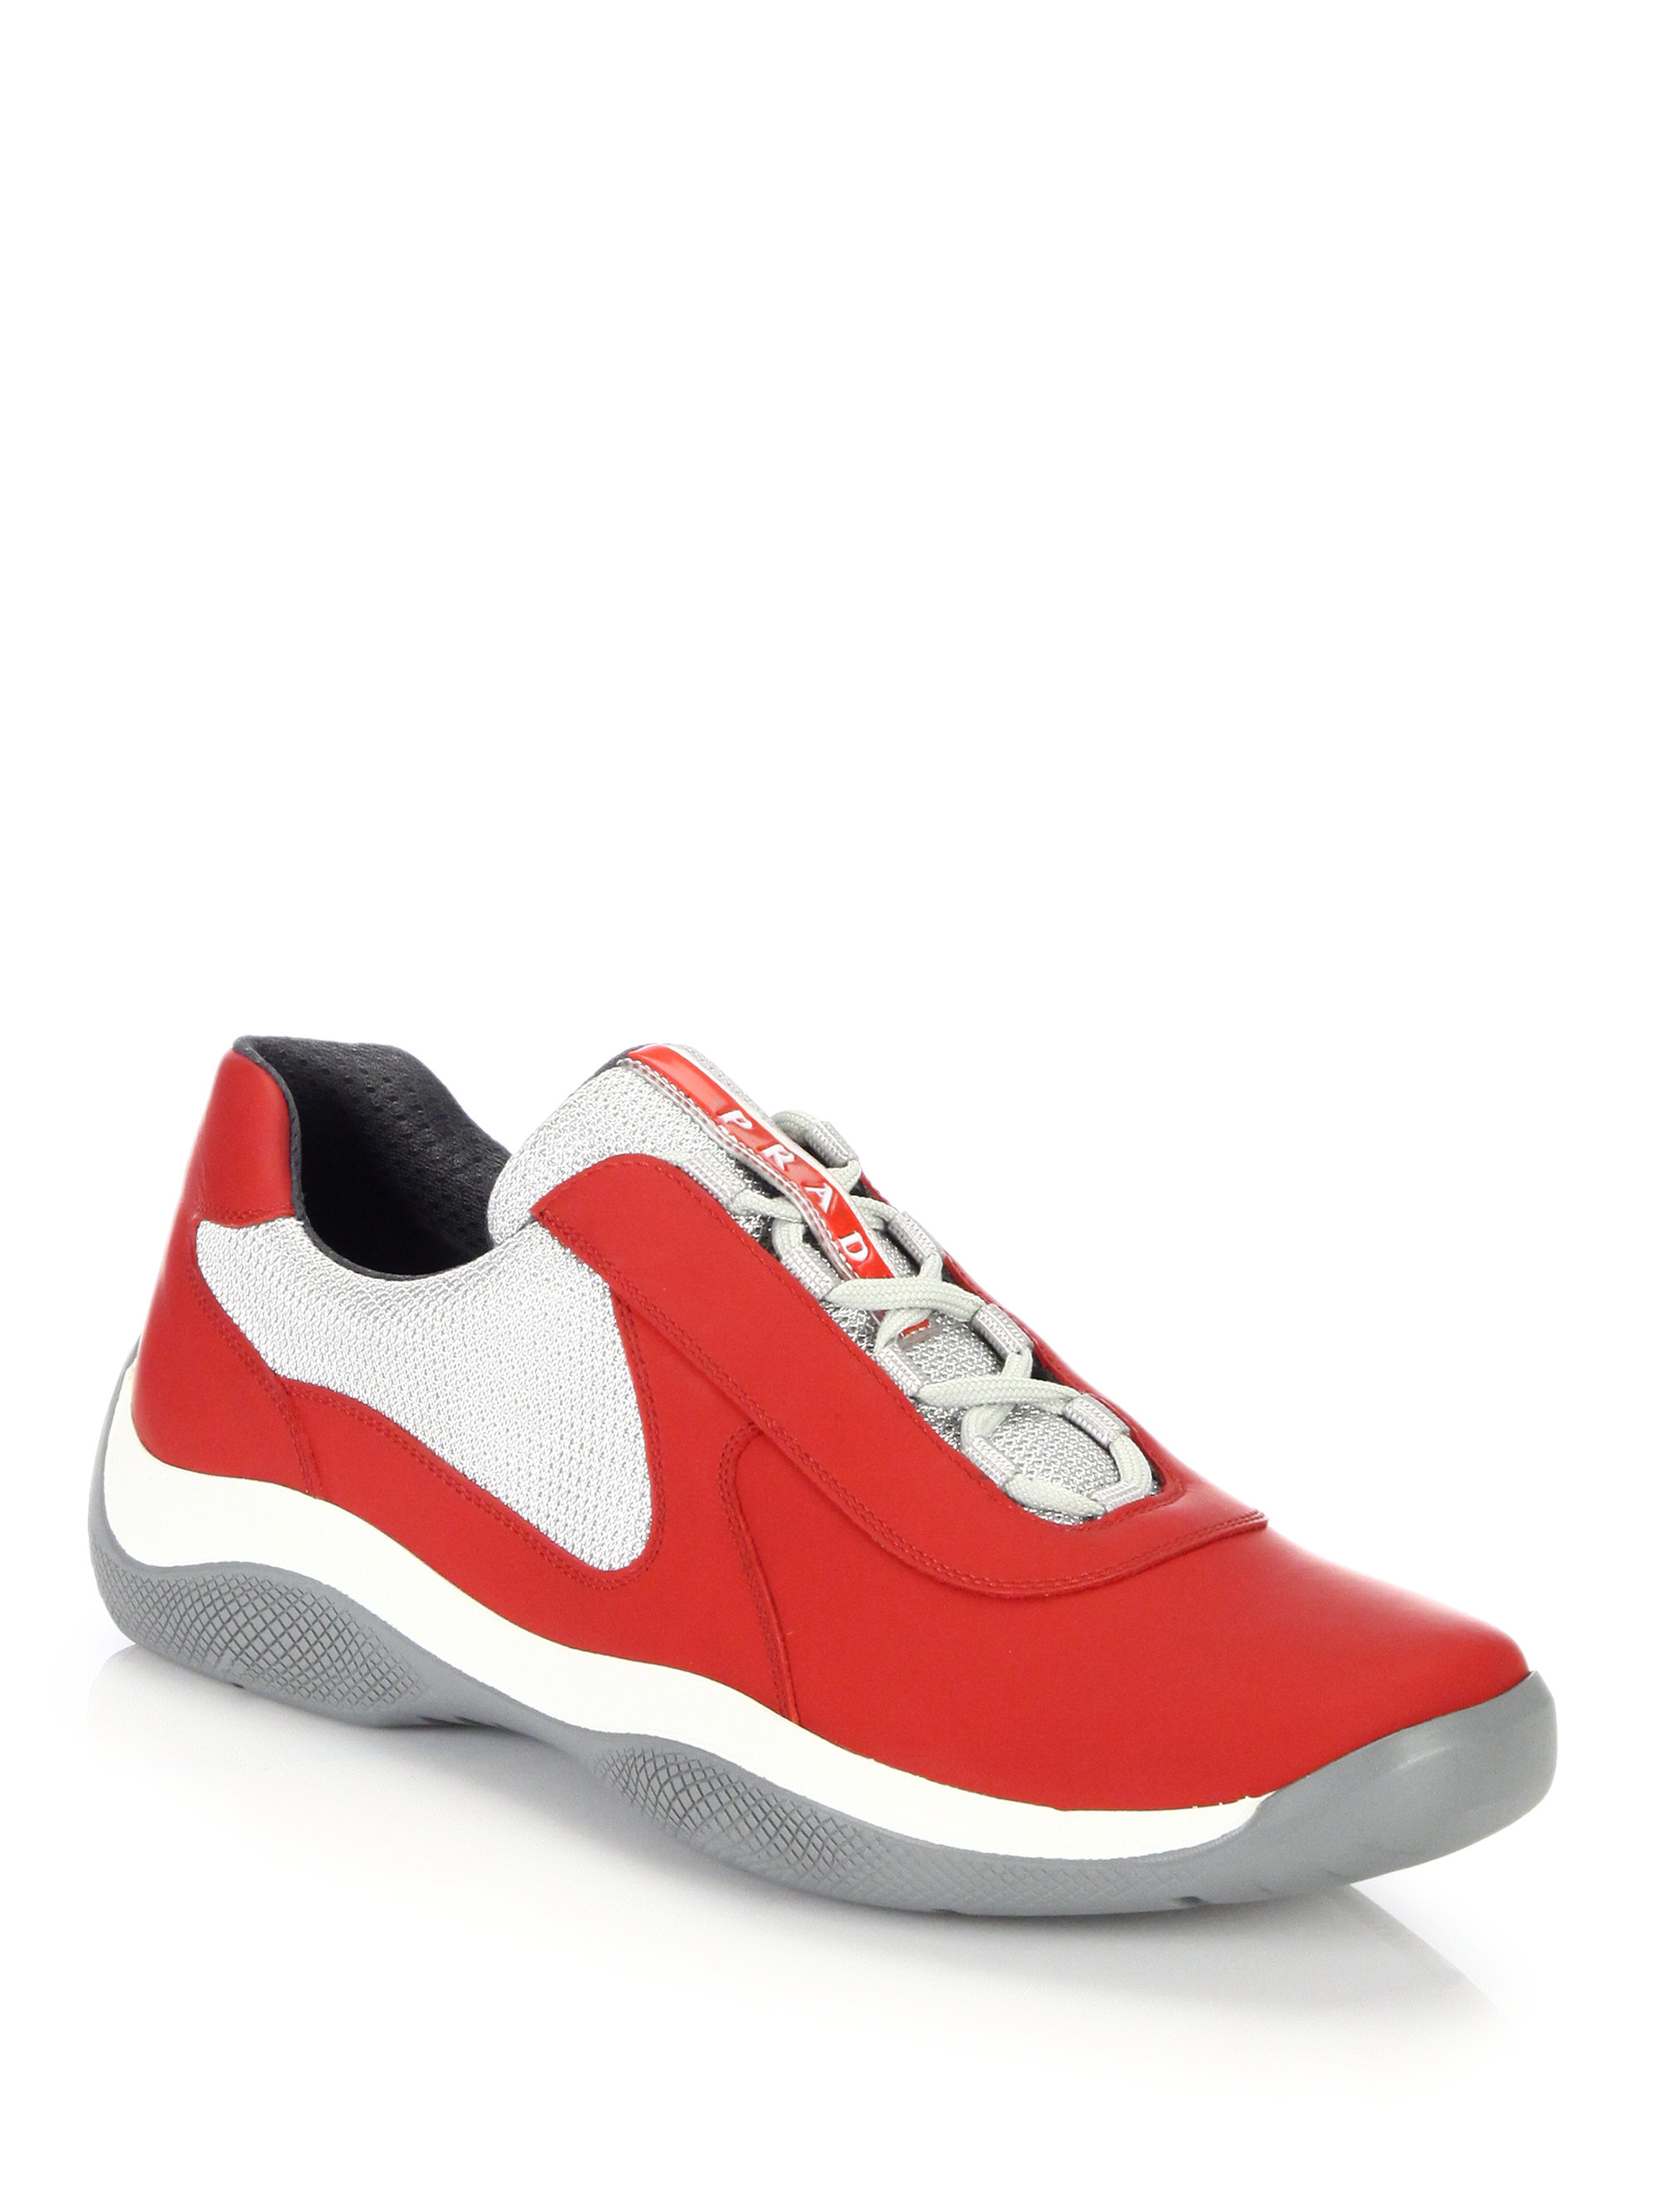 House Of Fraser Red Shoes